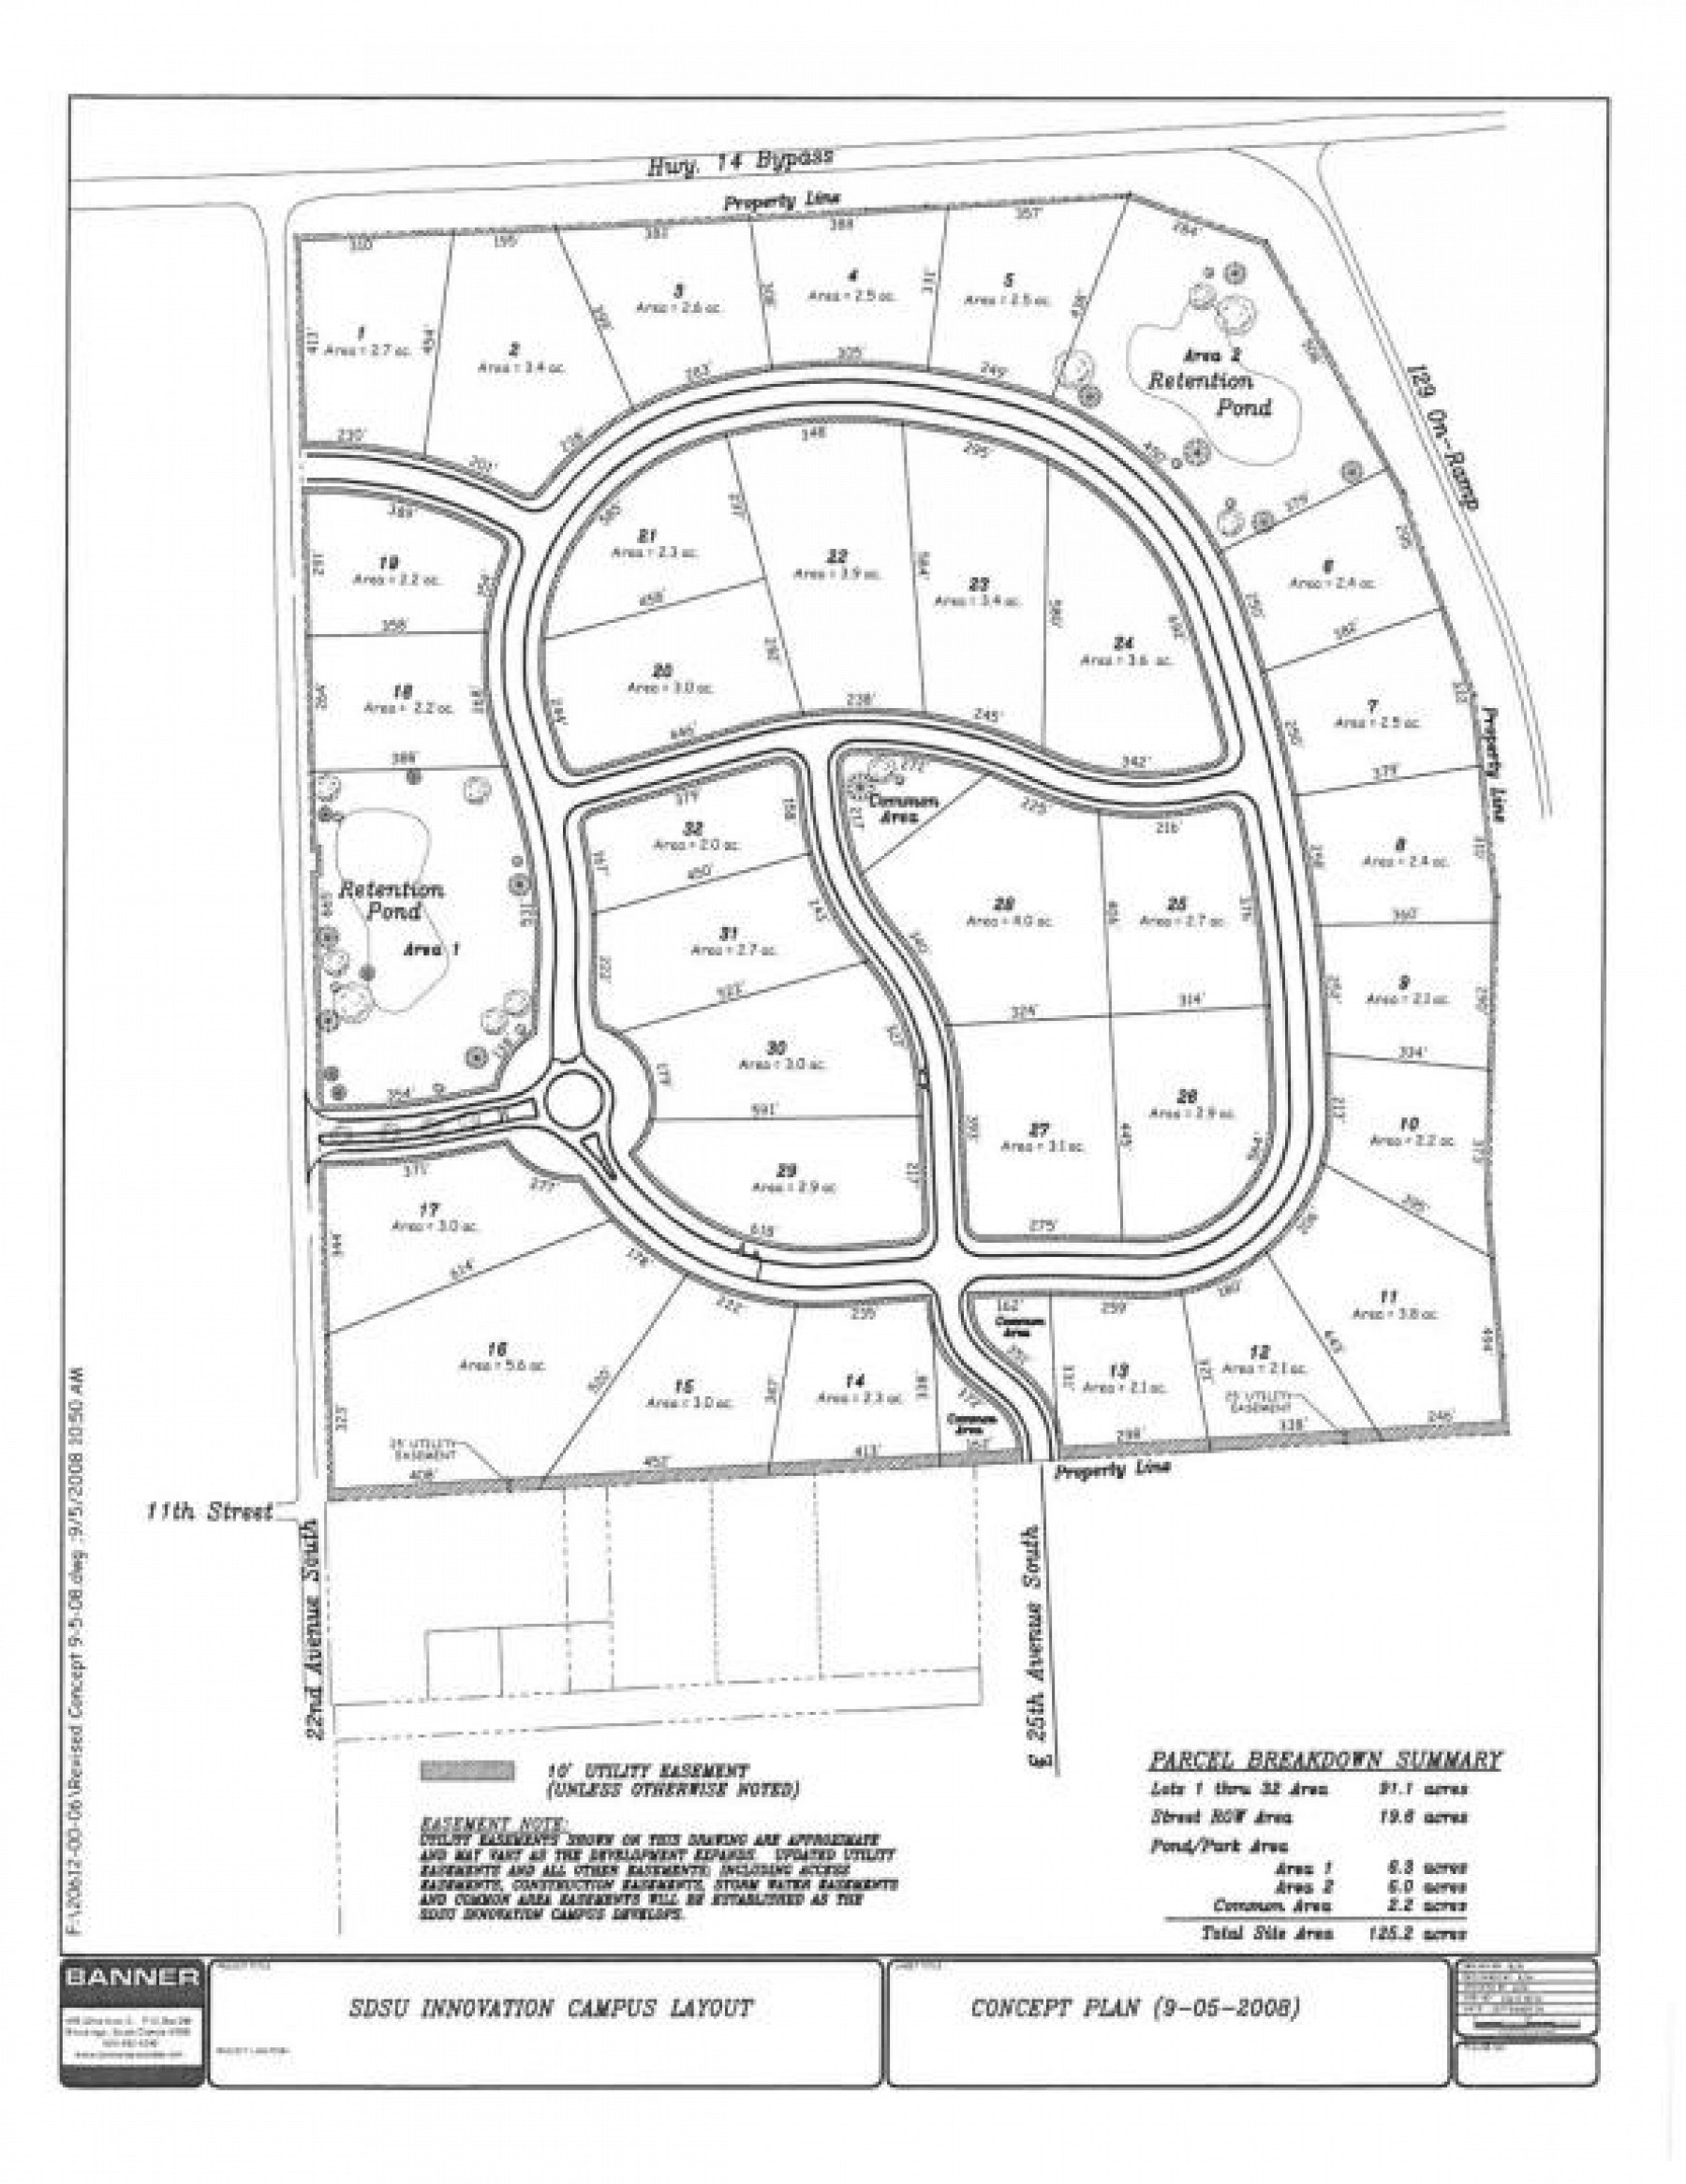 Lot 15 Innovation Campus, Brookings, SD 57006